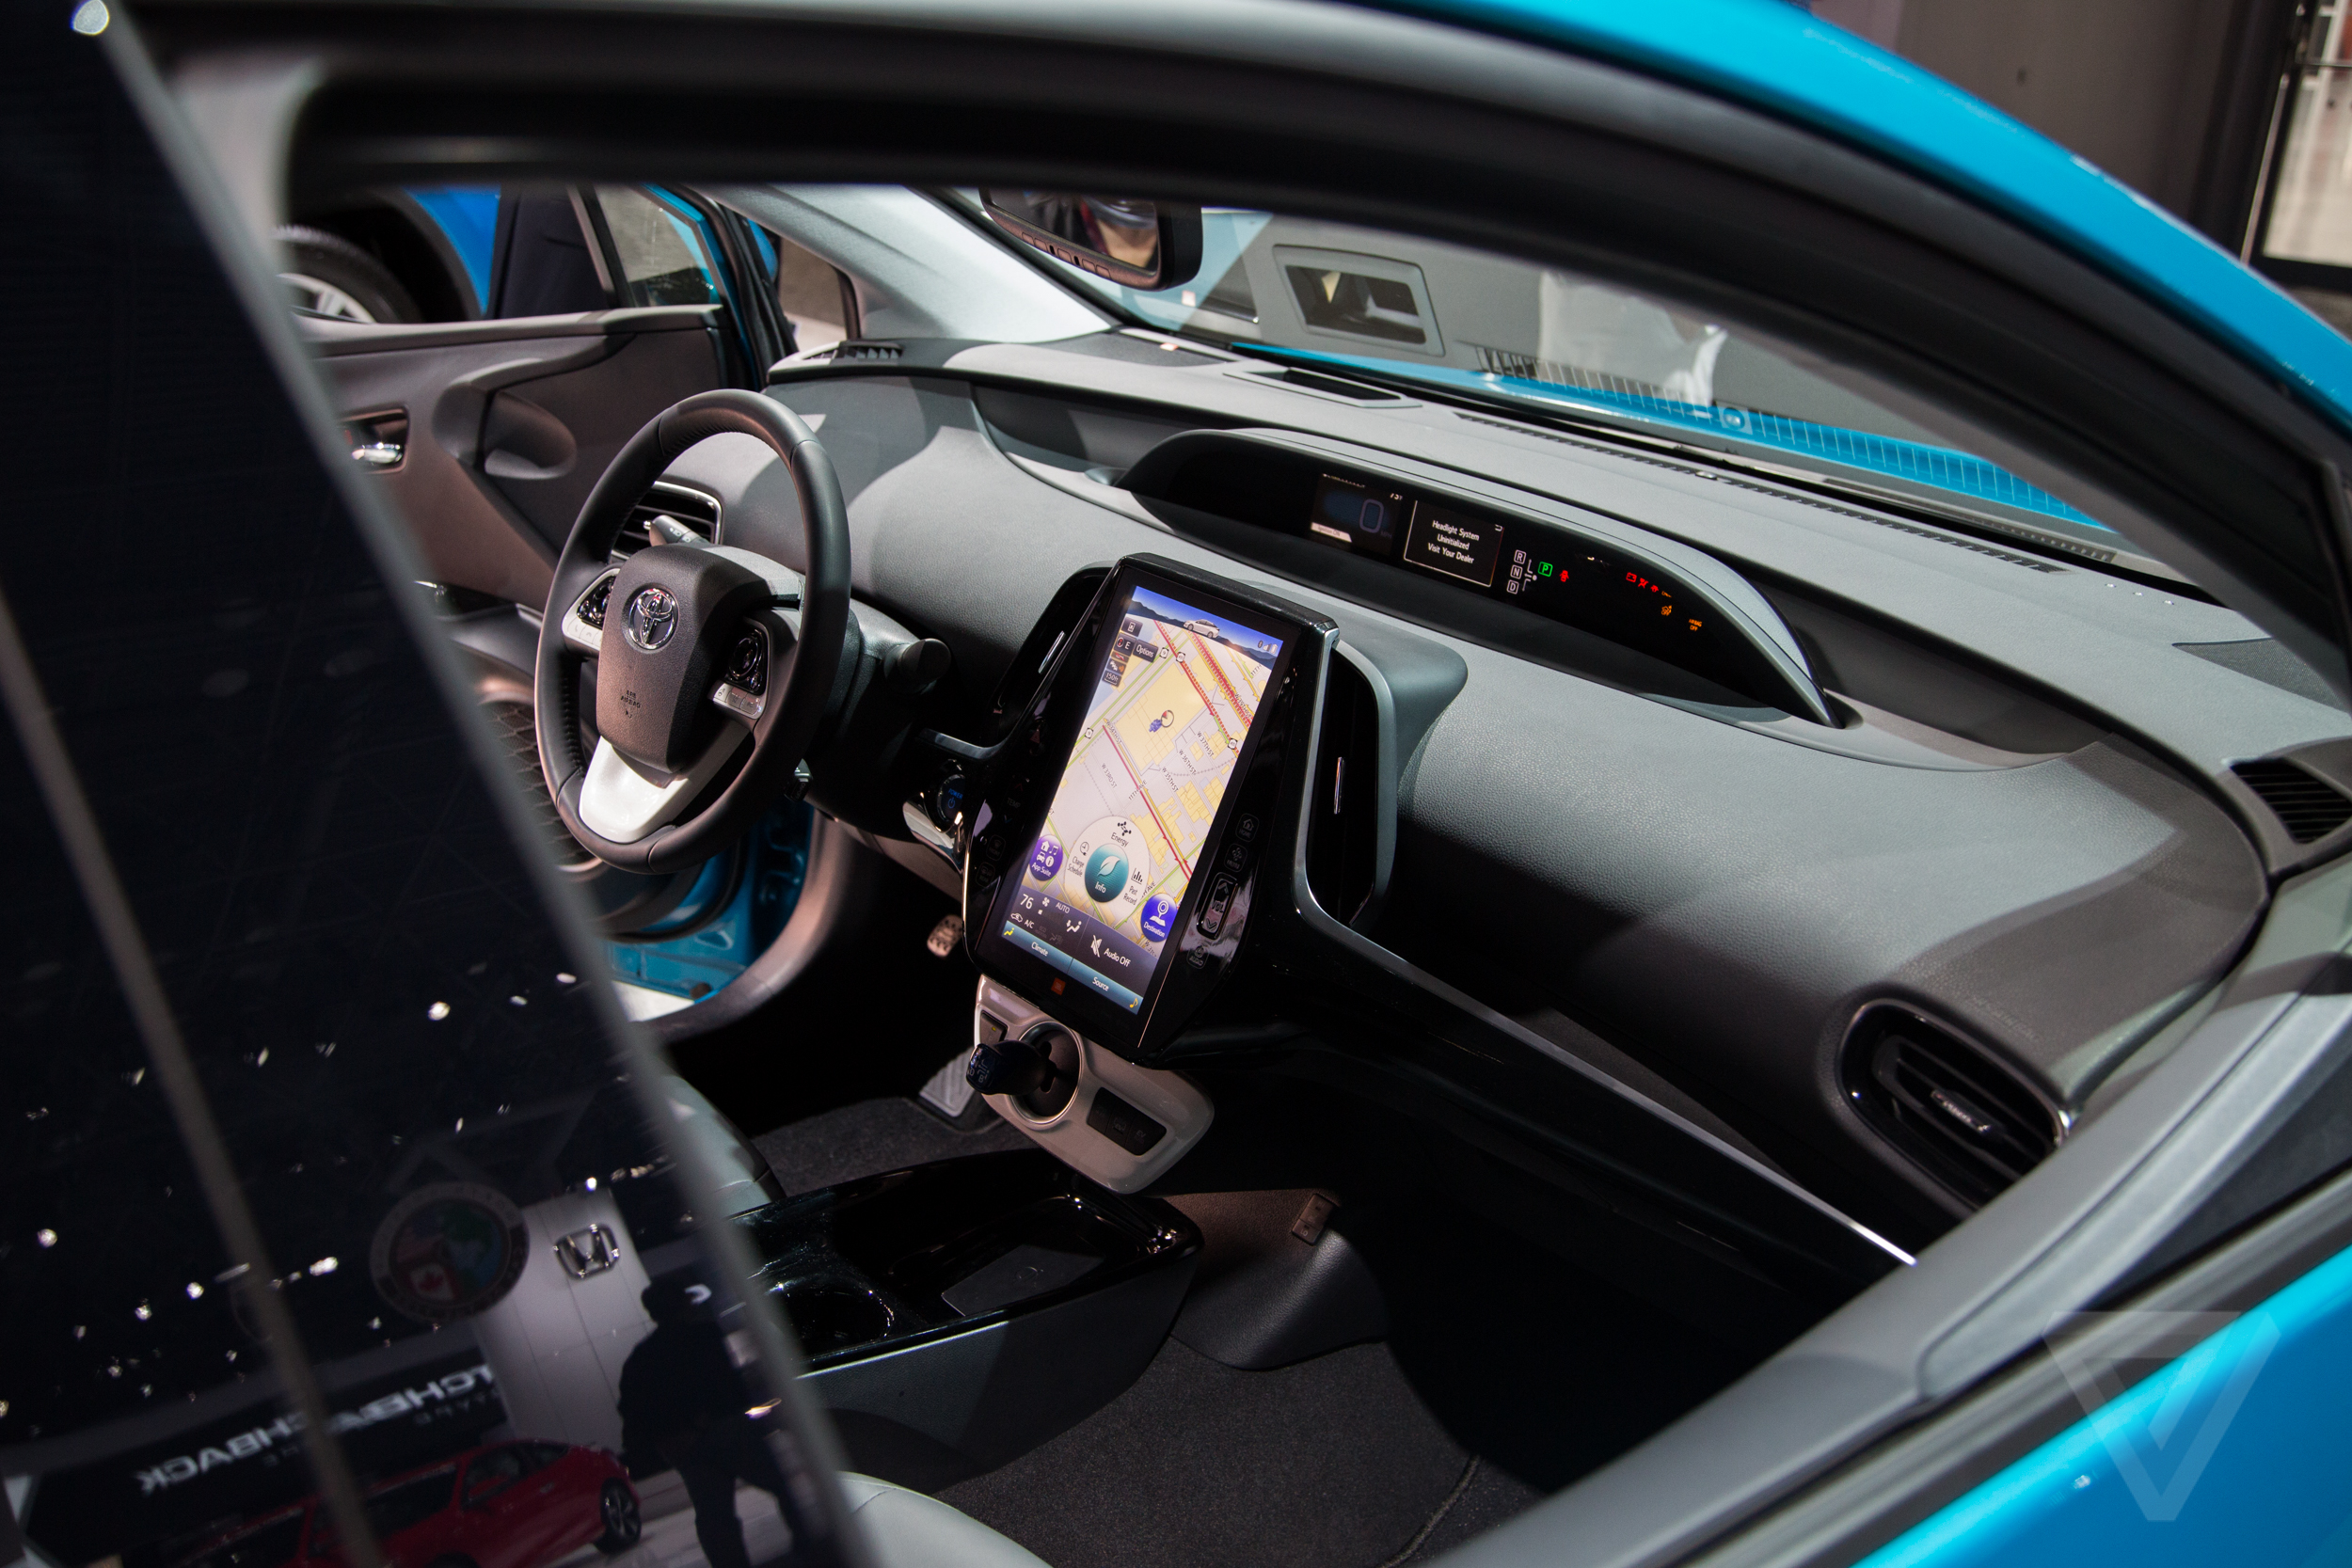 The Toyota Prius Prime's high-tech interior has a 'budget Tesla